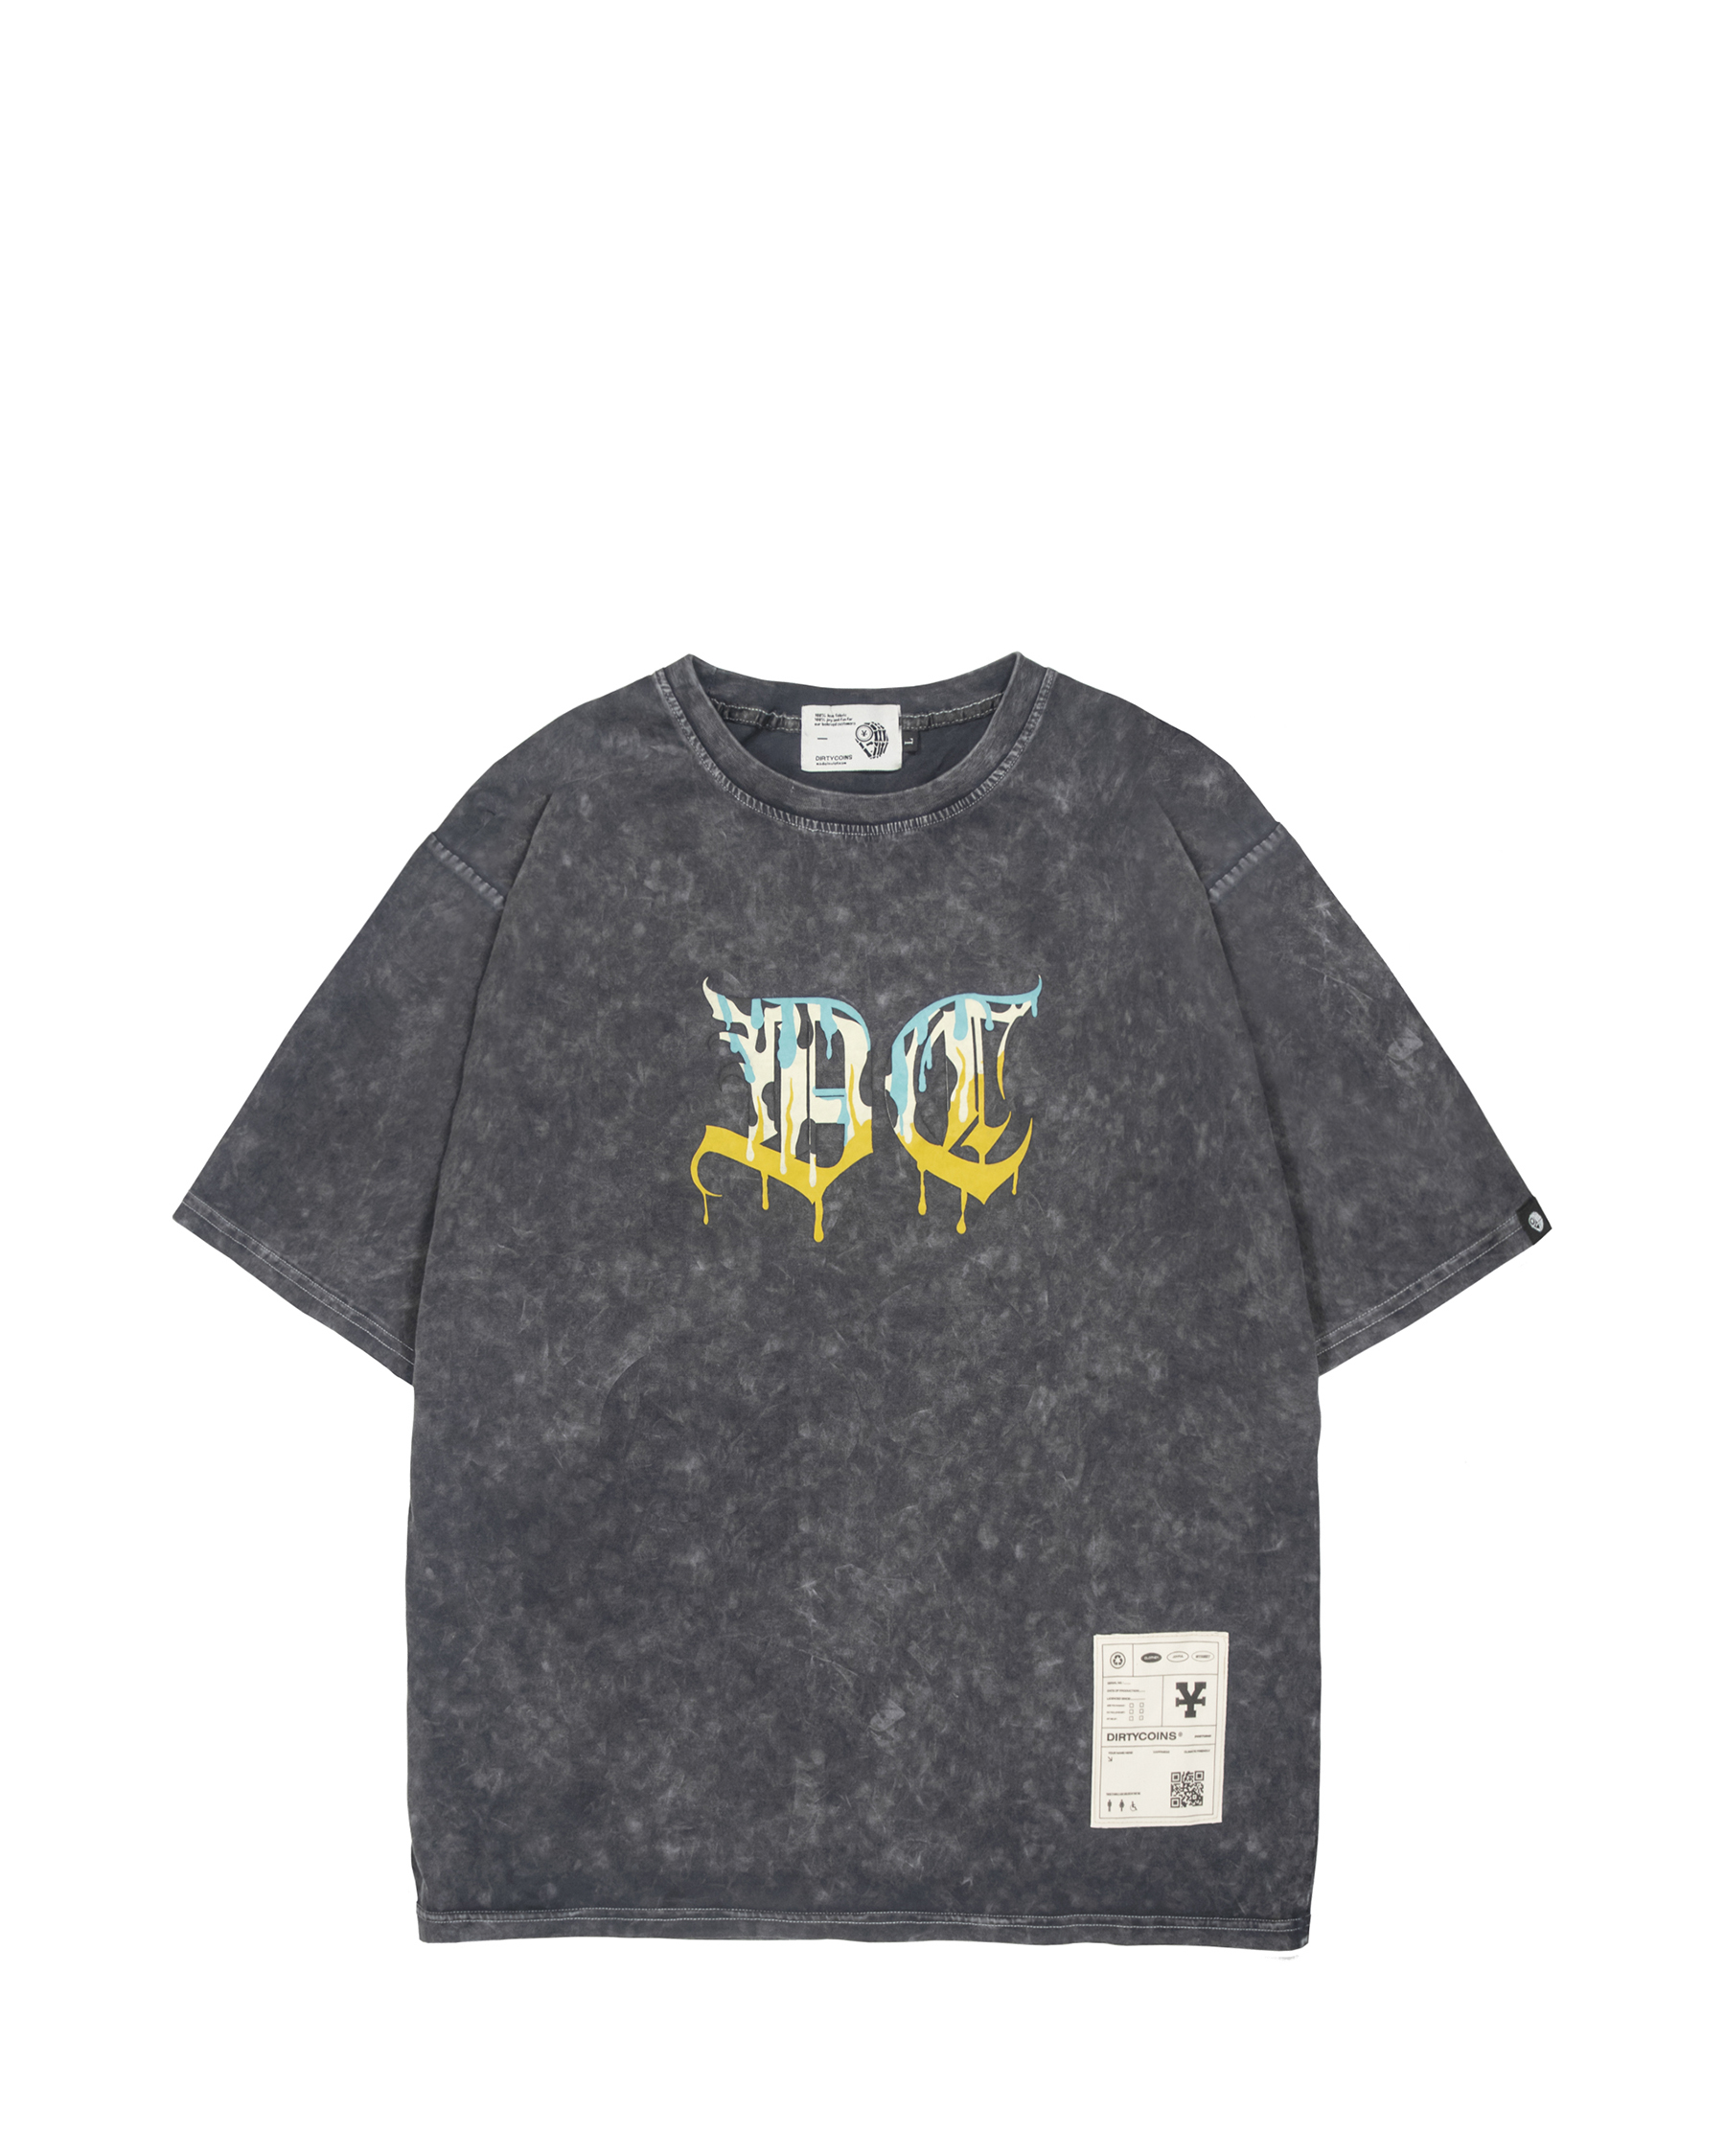 Dripee Wash T-Shirt